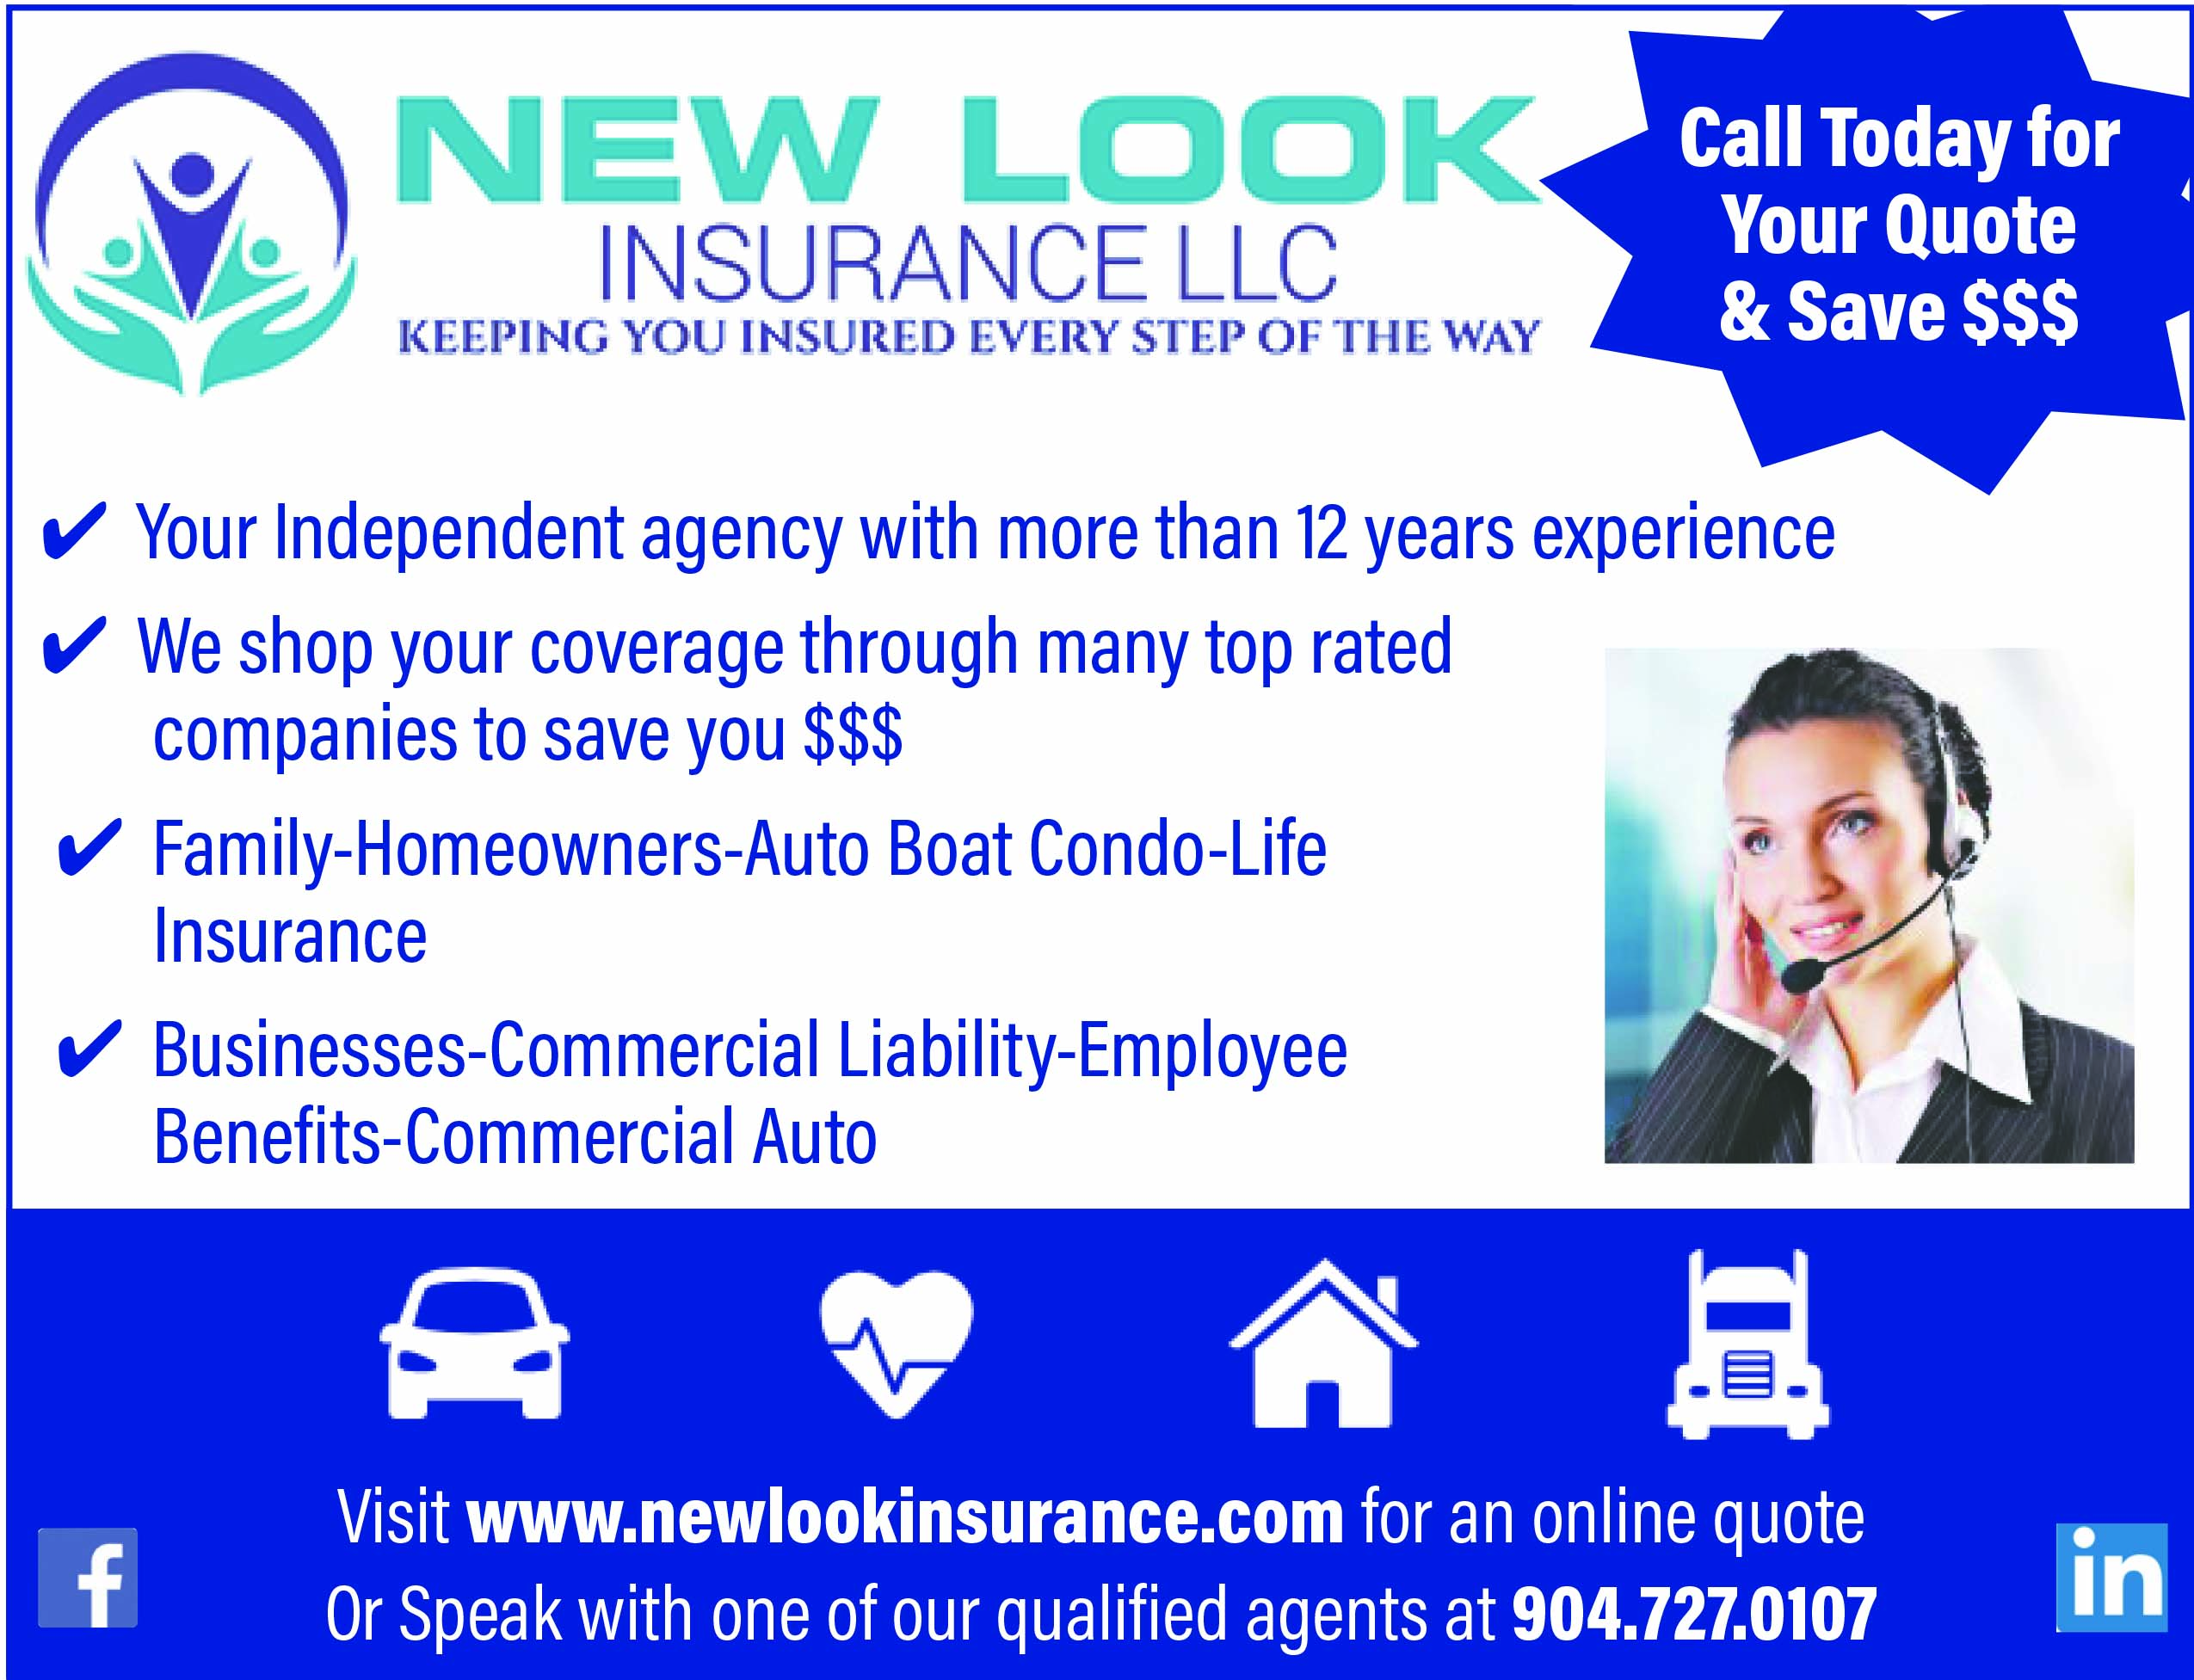 New look insurance LLC Call today for your quote and save $$$